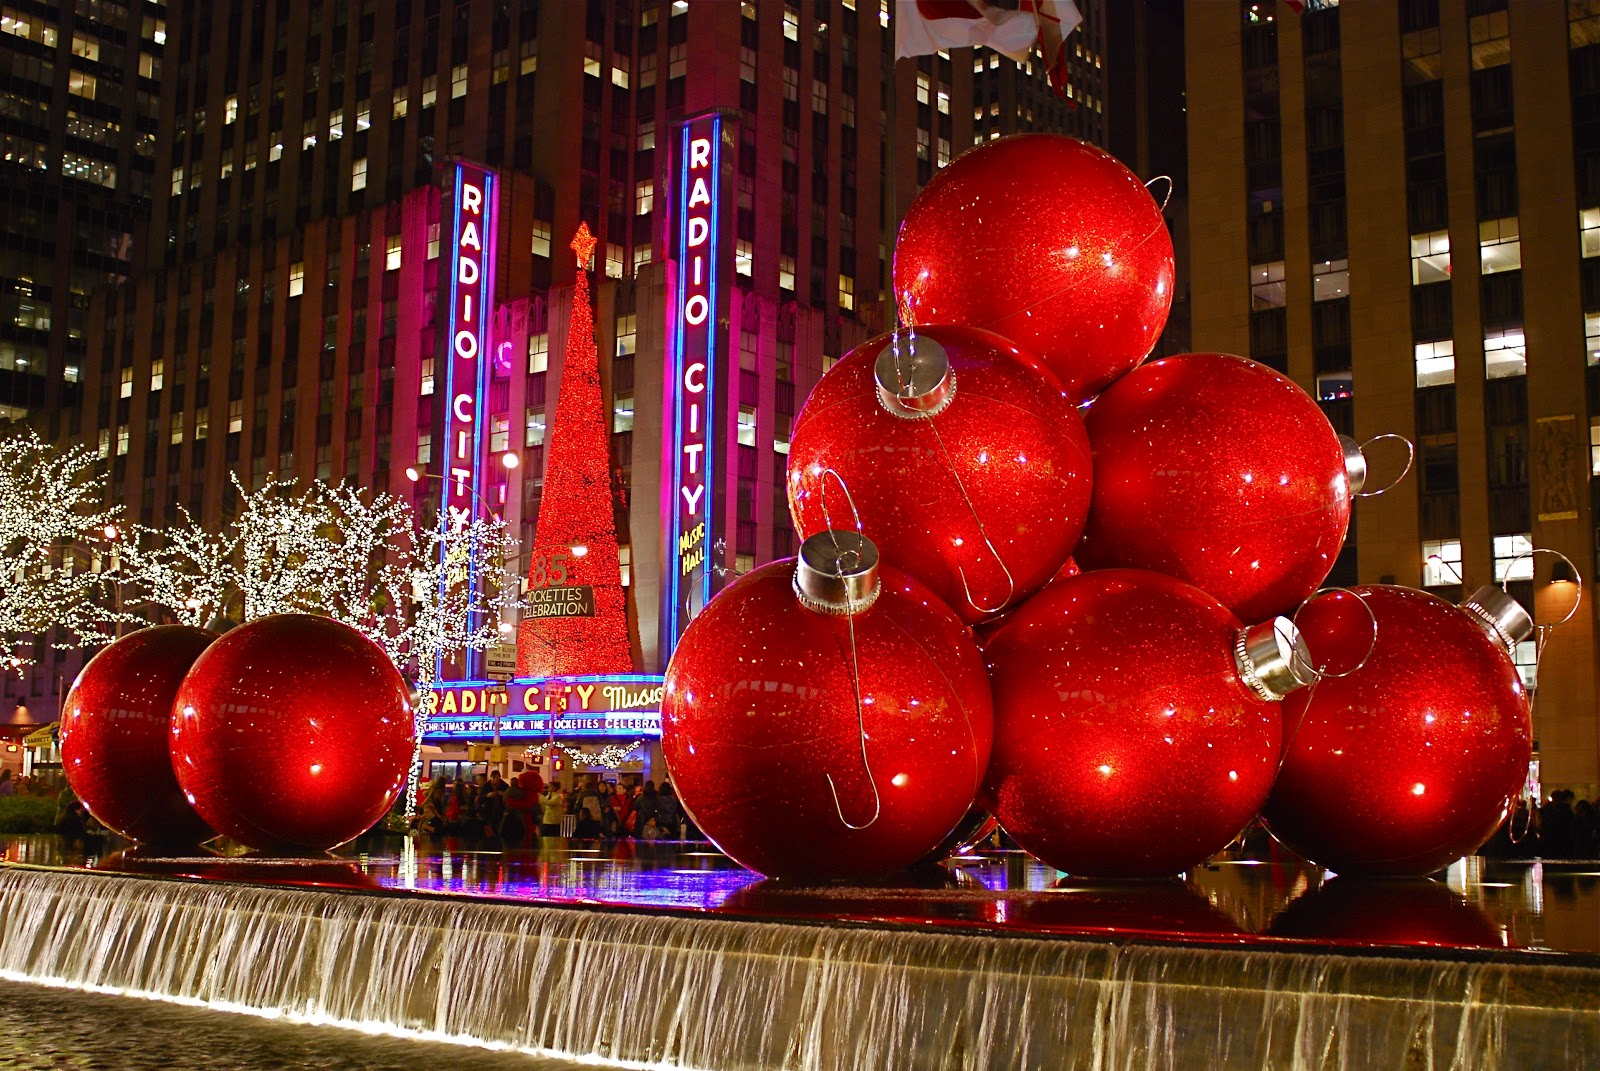 as in past years giant red christmas ornaments lights toy soldiers model train and christmas trees are on display along sixth avenue avenue of the